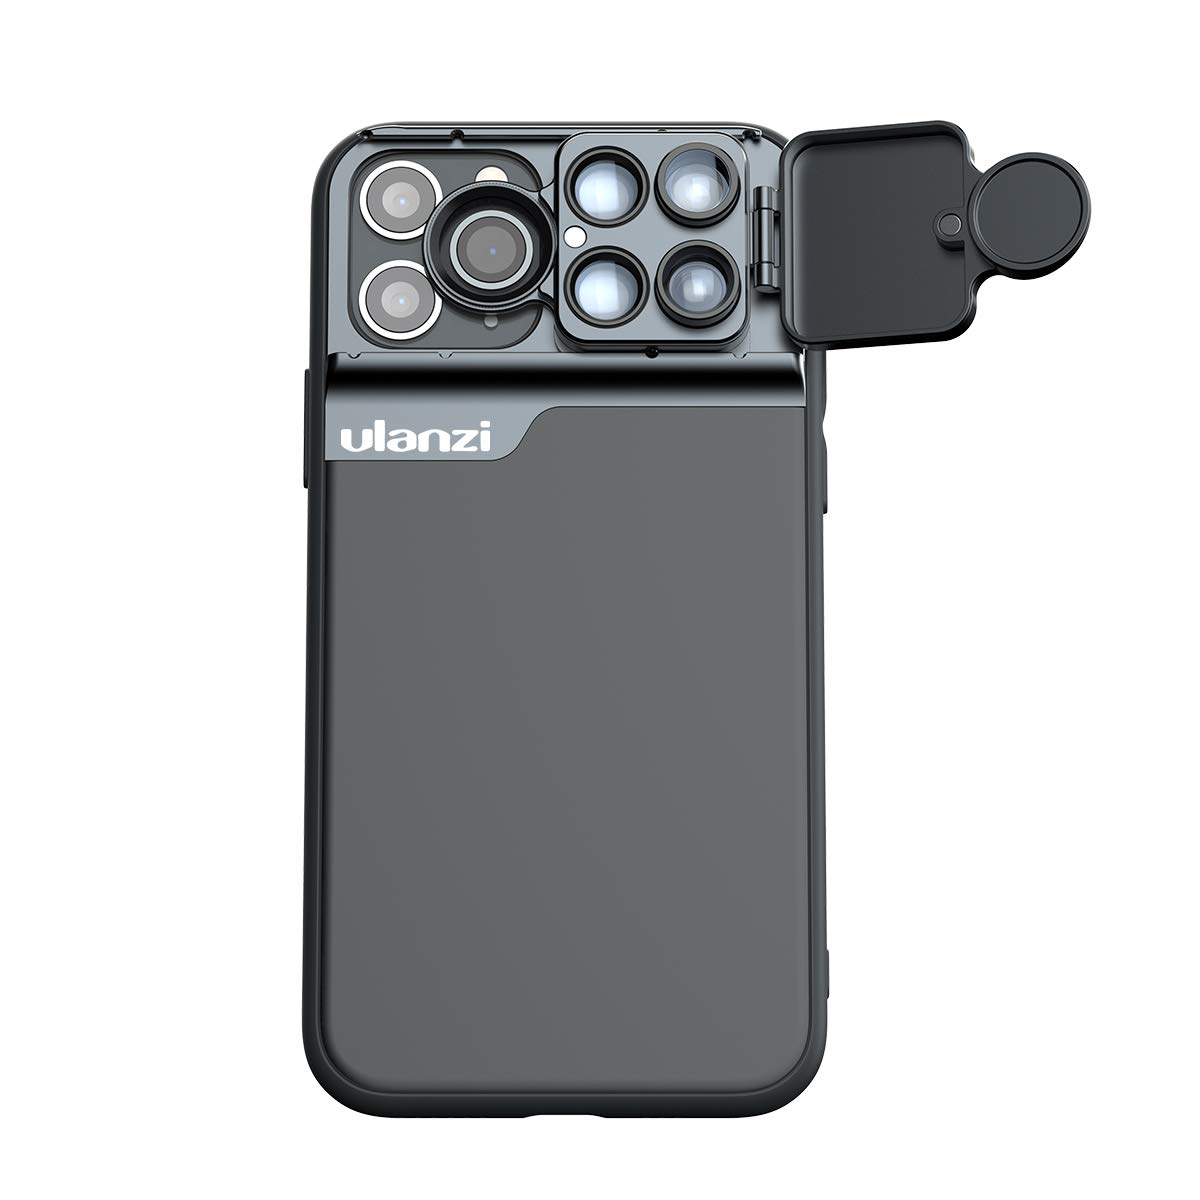 ULANZI Phone Lens for iPhone 11 Pro Max by ULANZ